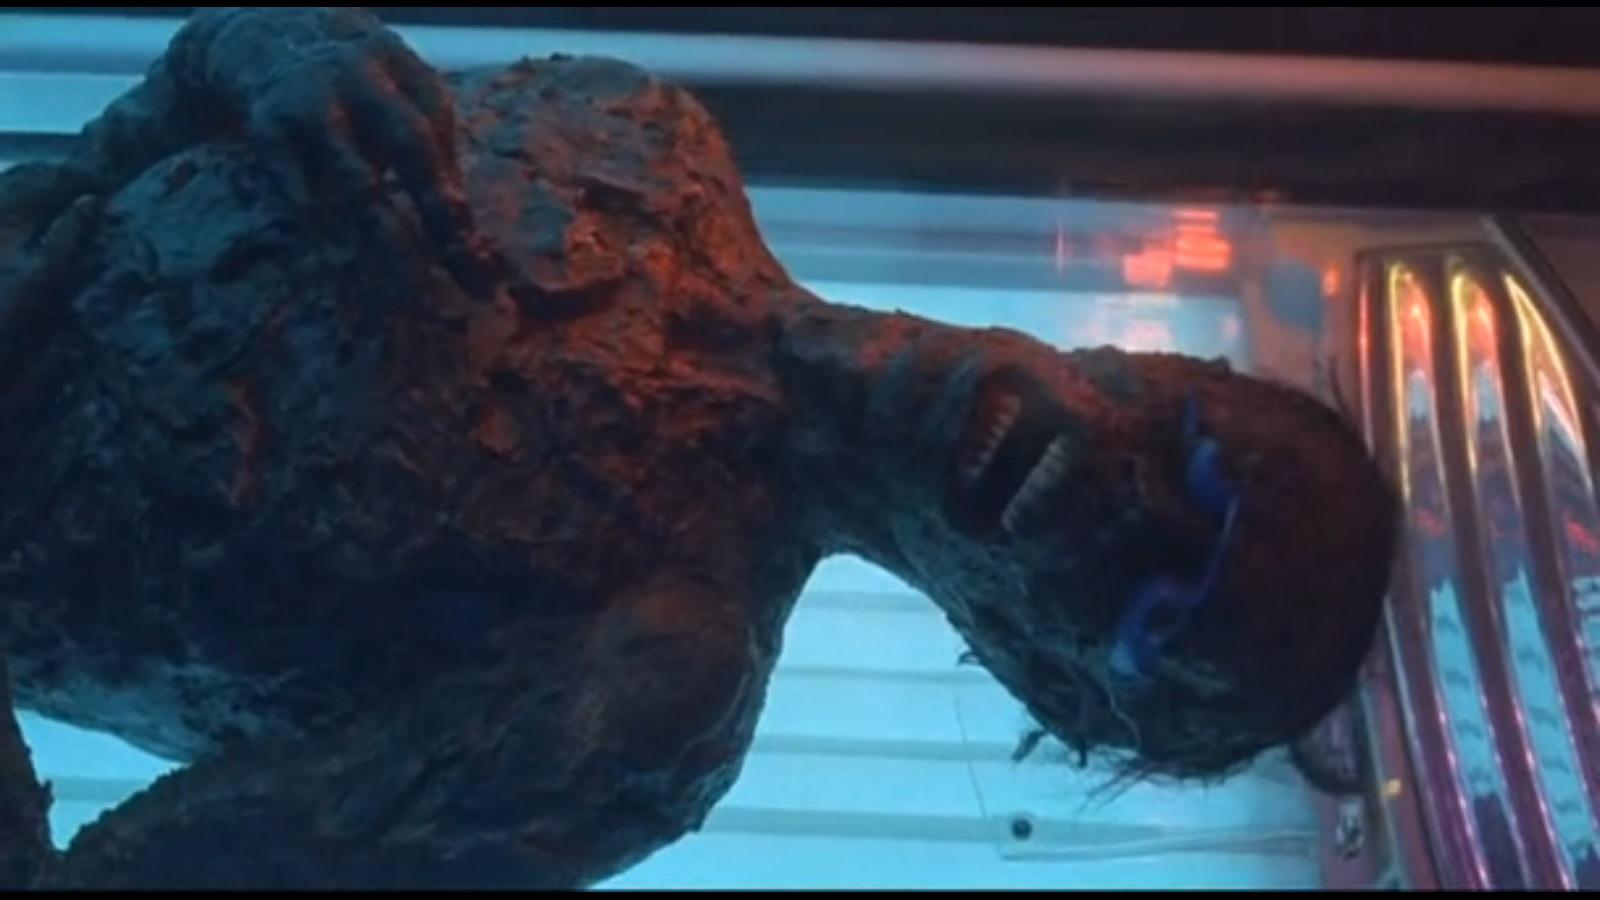 Urban Legend 3: Bloody Mary. A close up of a burnt and blackened corpse lying inside a tanning bed.